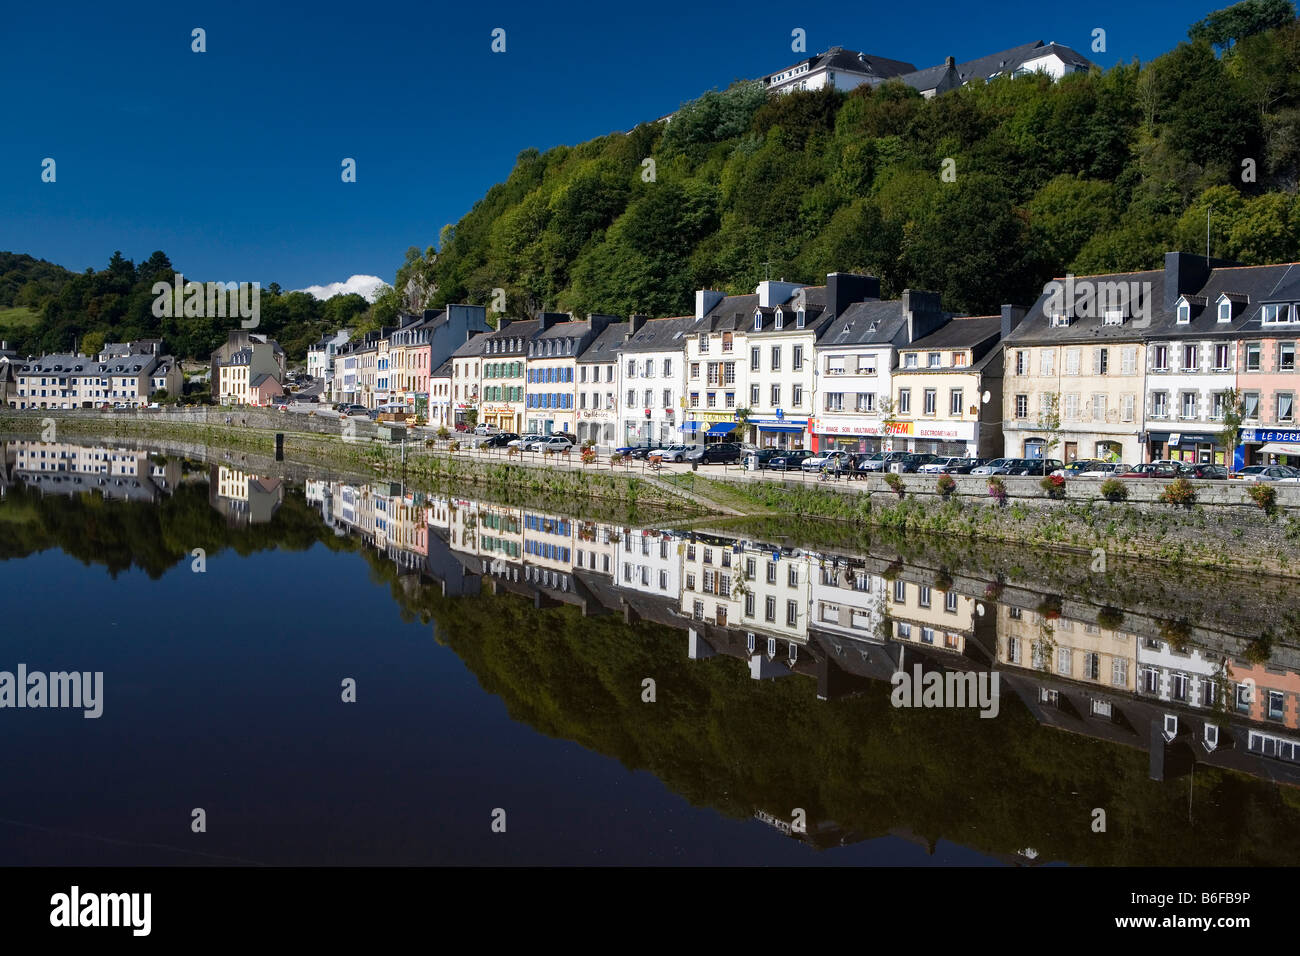 Small town of Chateaulin on the Aulne River, southern Finistère, Brittany, France, Europe - Stock Image